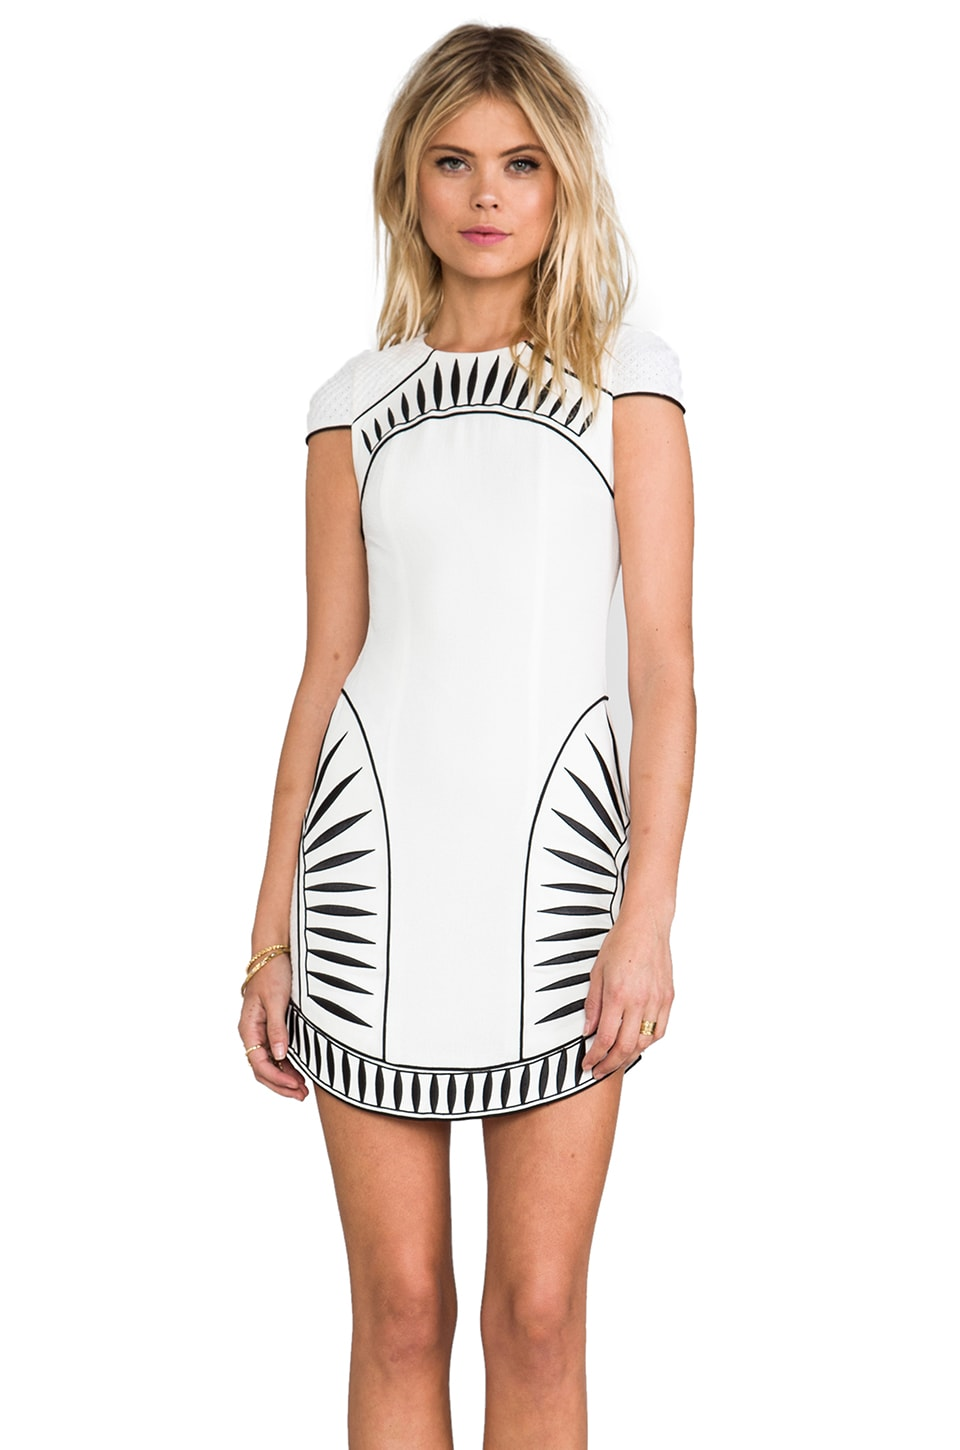 bless'ed are the meek Contrast Dress in Ivory/Black